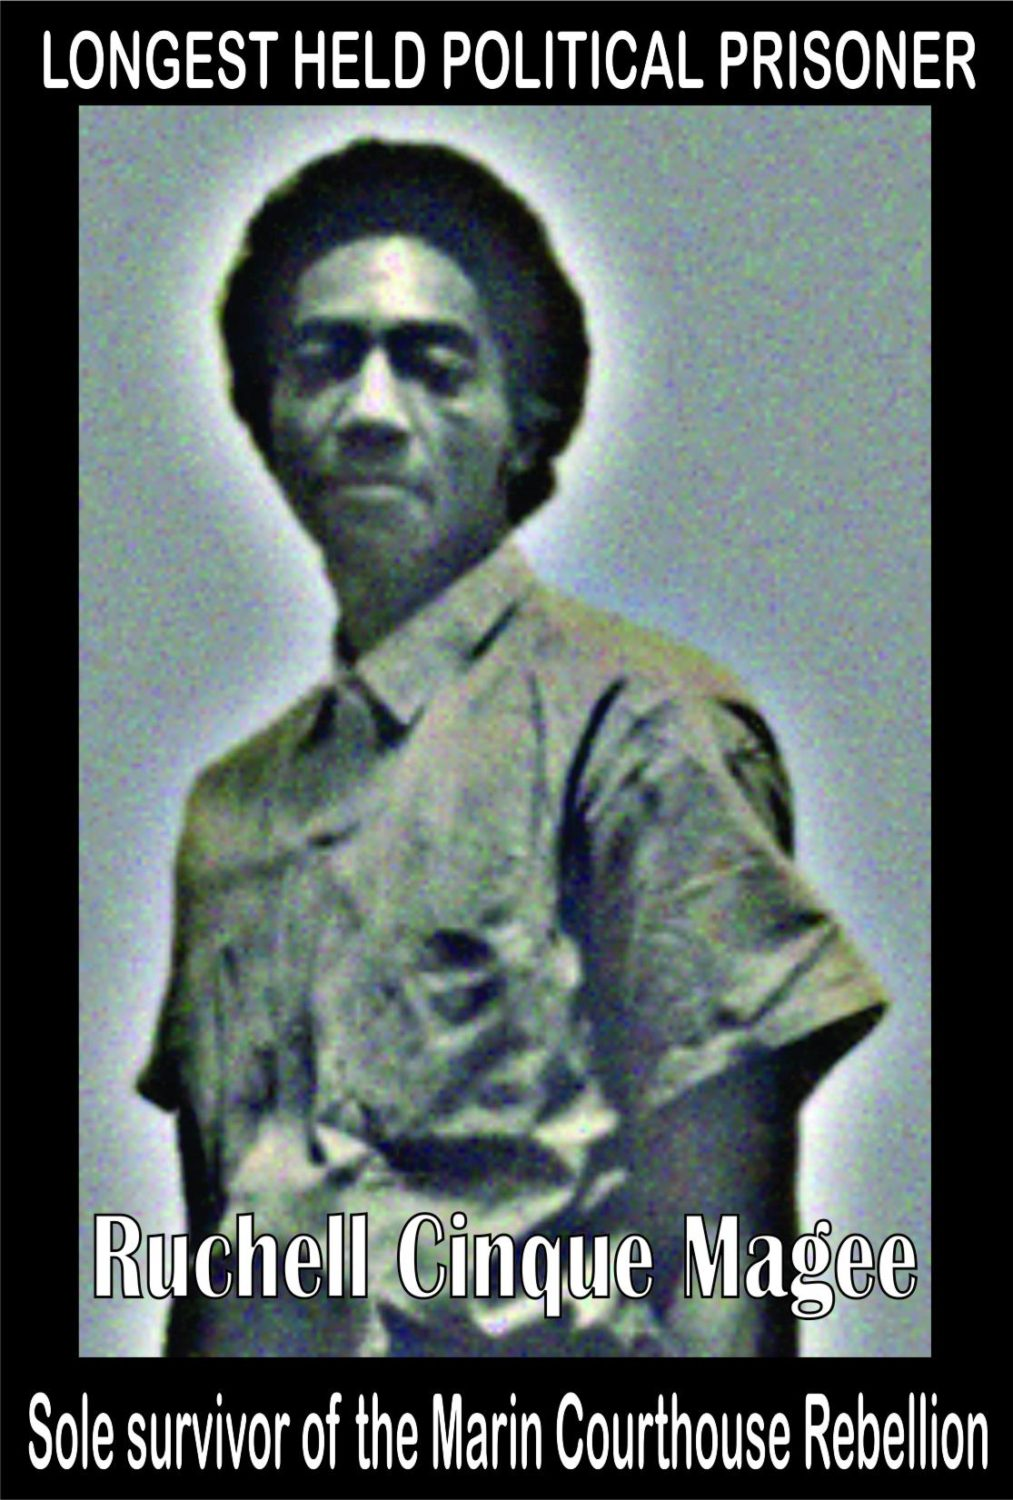 Ruchell-Cinque-Magee-sole-survivor-of-the-Marin-Courthouse-Rebellion-graphic, COVID-19 puts Black political prisoners on death row, Behind Enemy Lines